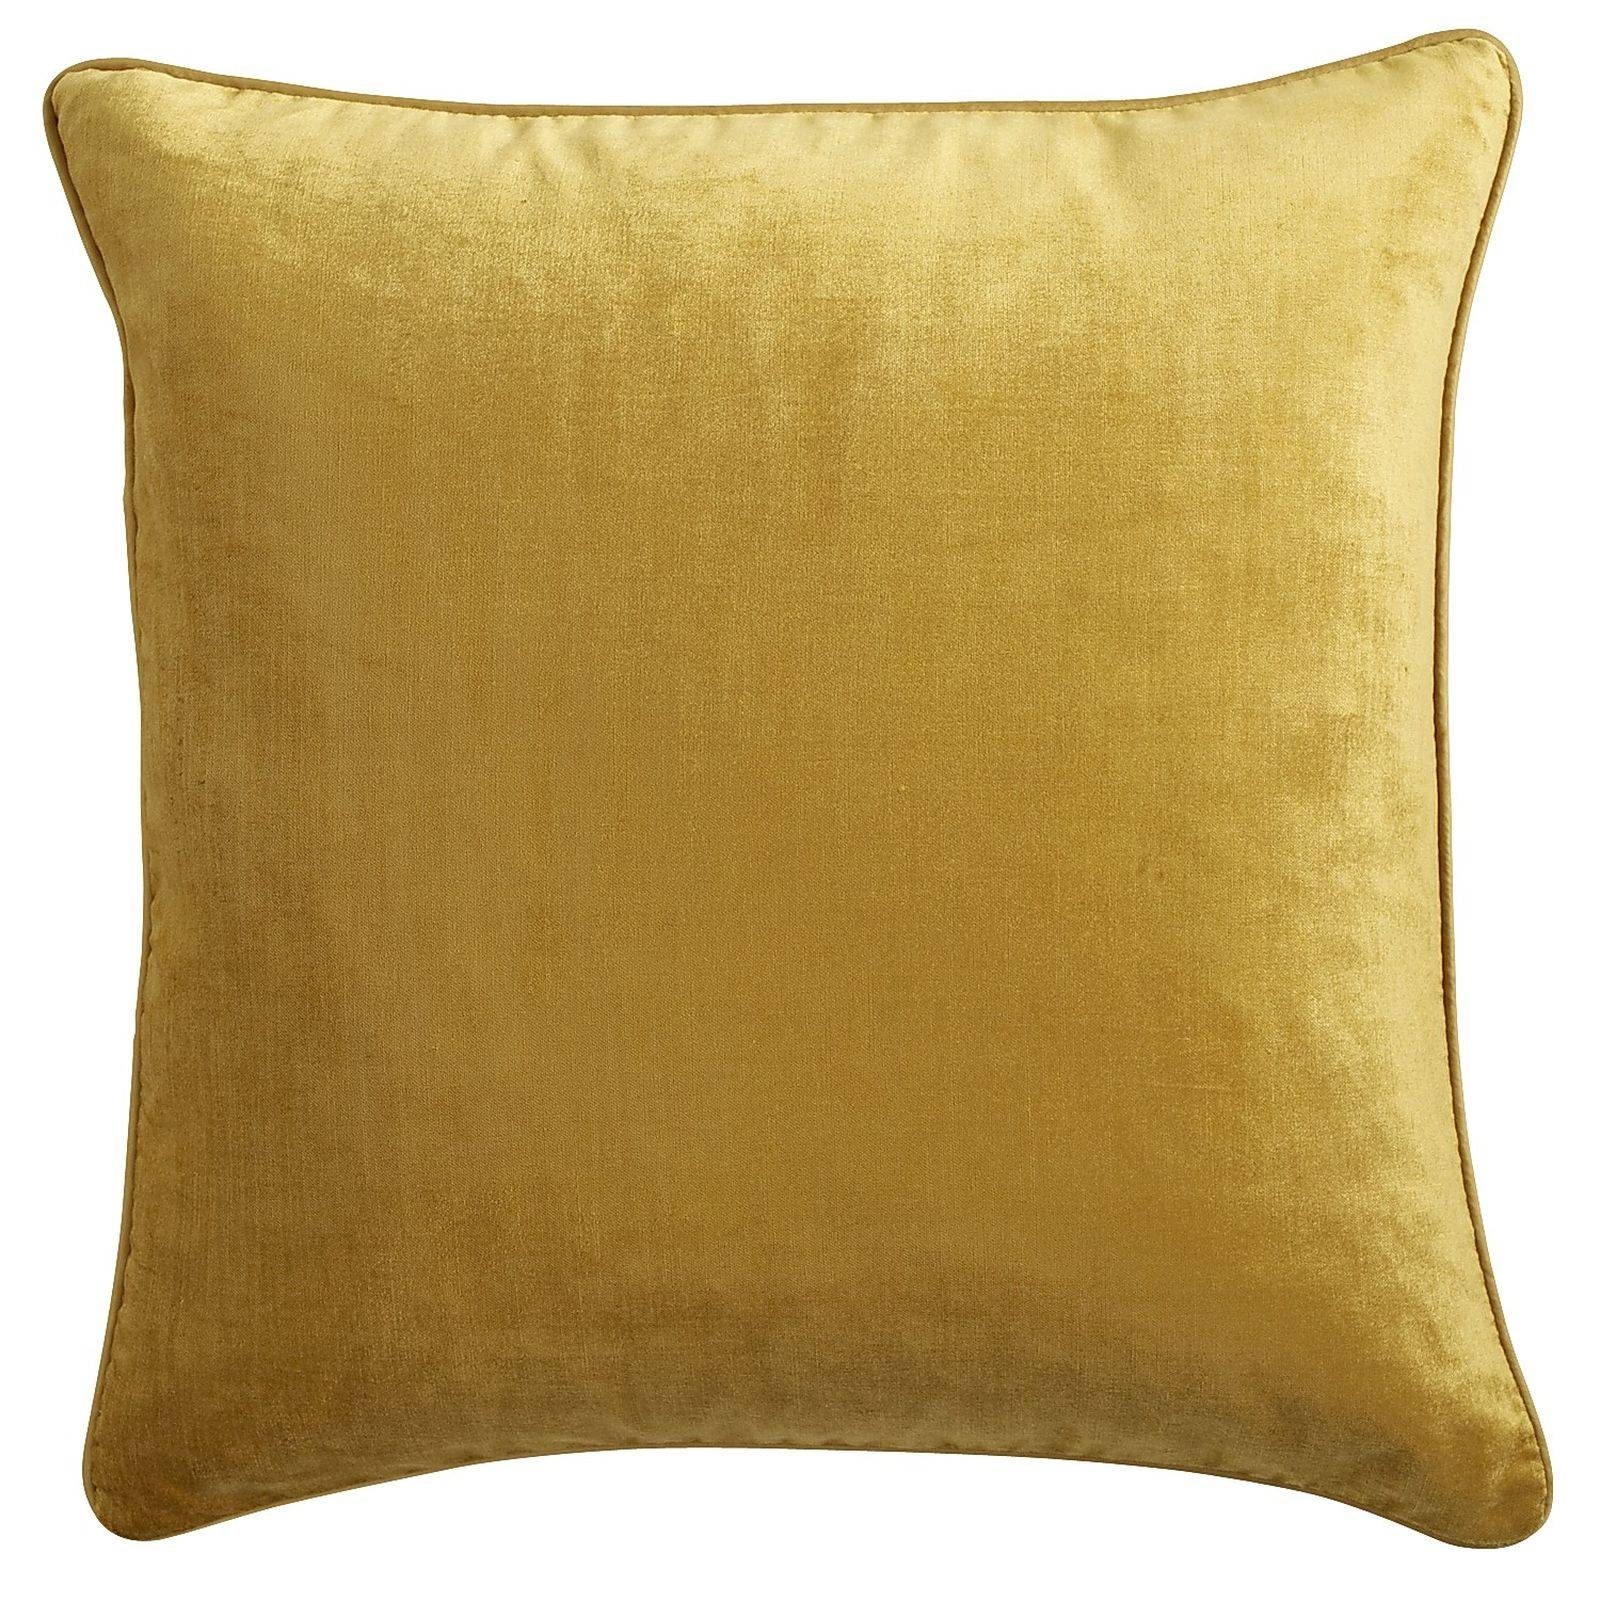 Gold Sofa Pillows 49 With Gold Sofa Pillows | Jinanhongyu with regard to Gold Sofa Pillows (Image 4 of 15)